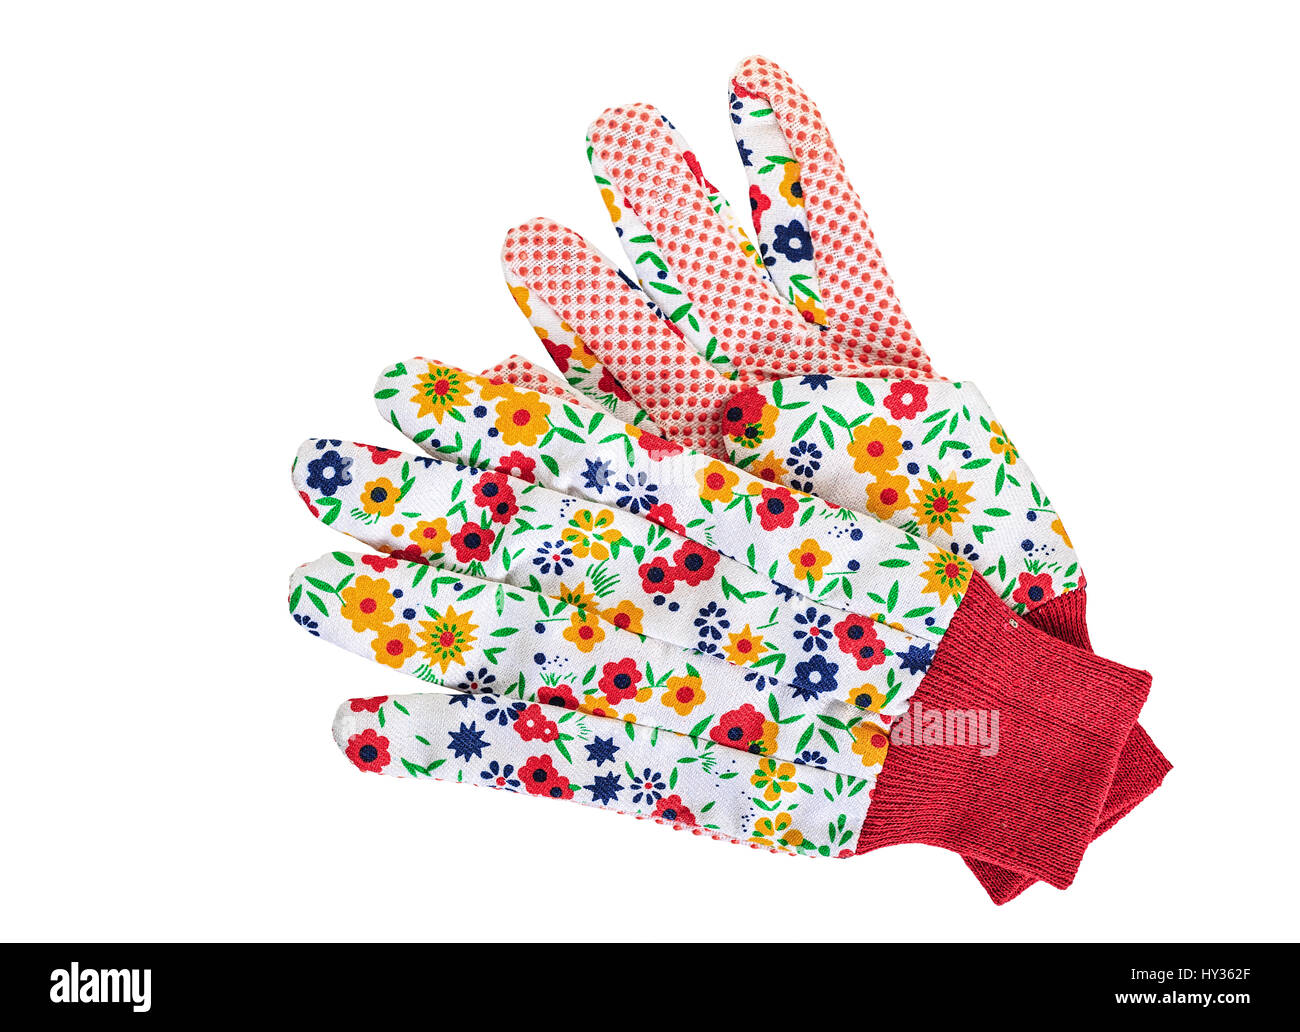 Pretty floral gardening gloves on a white background. - Stock Image